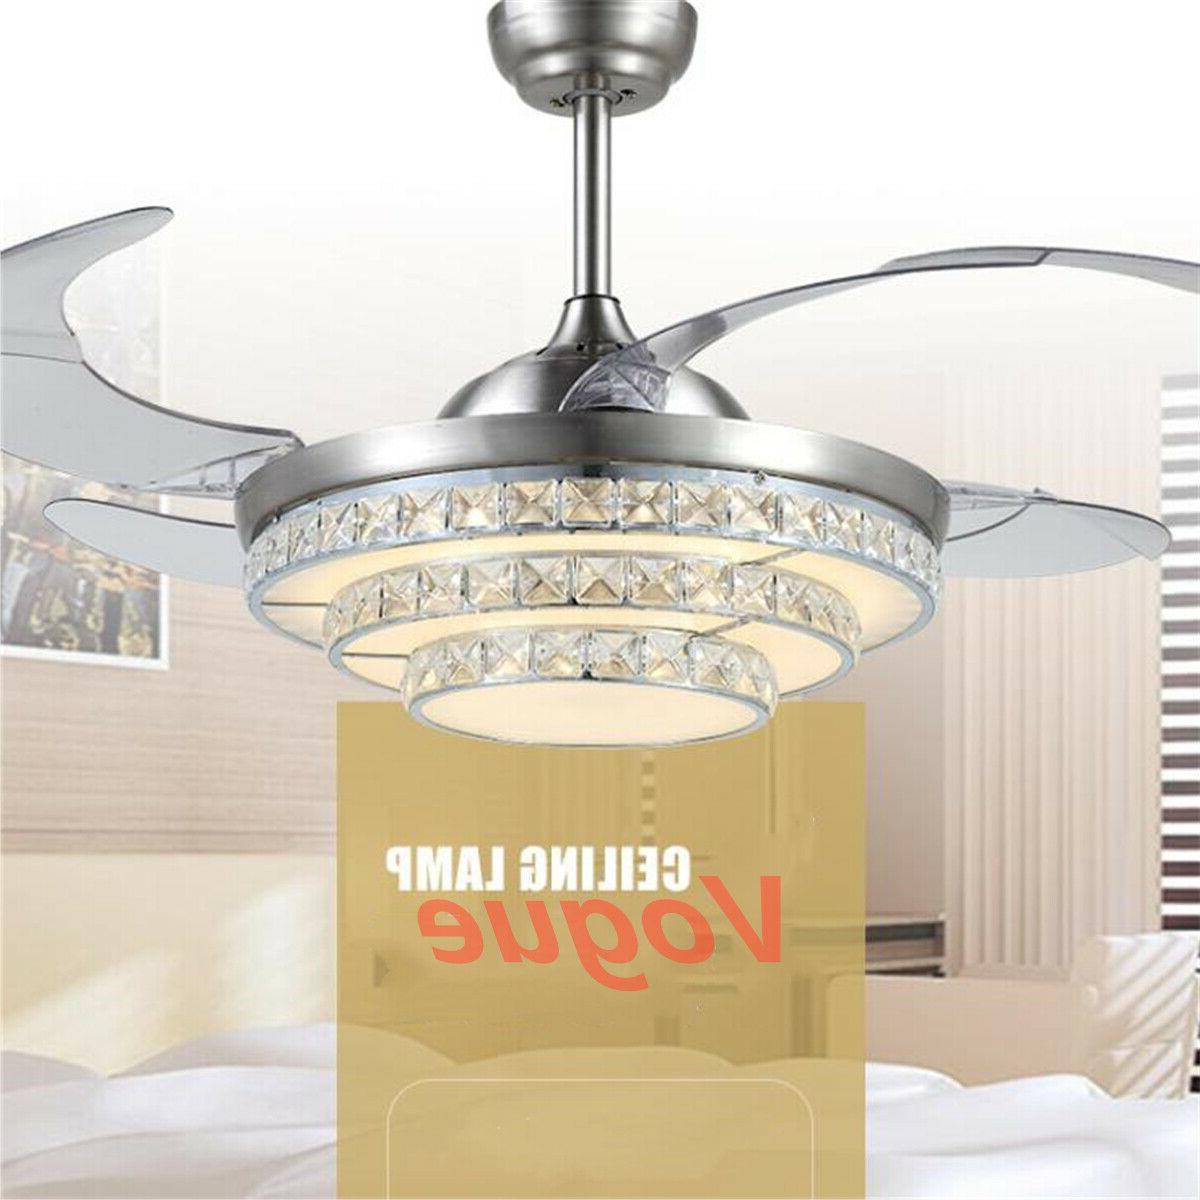 42'' Retractable Blade Fan Lamp Remote